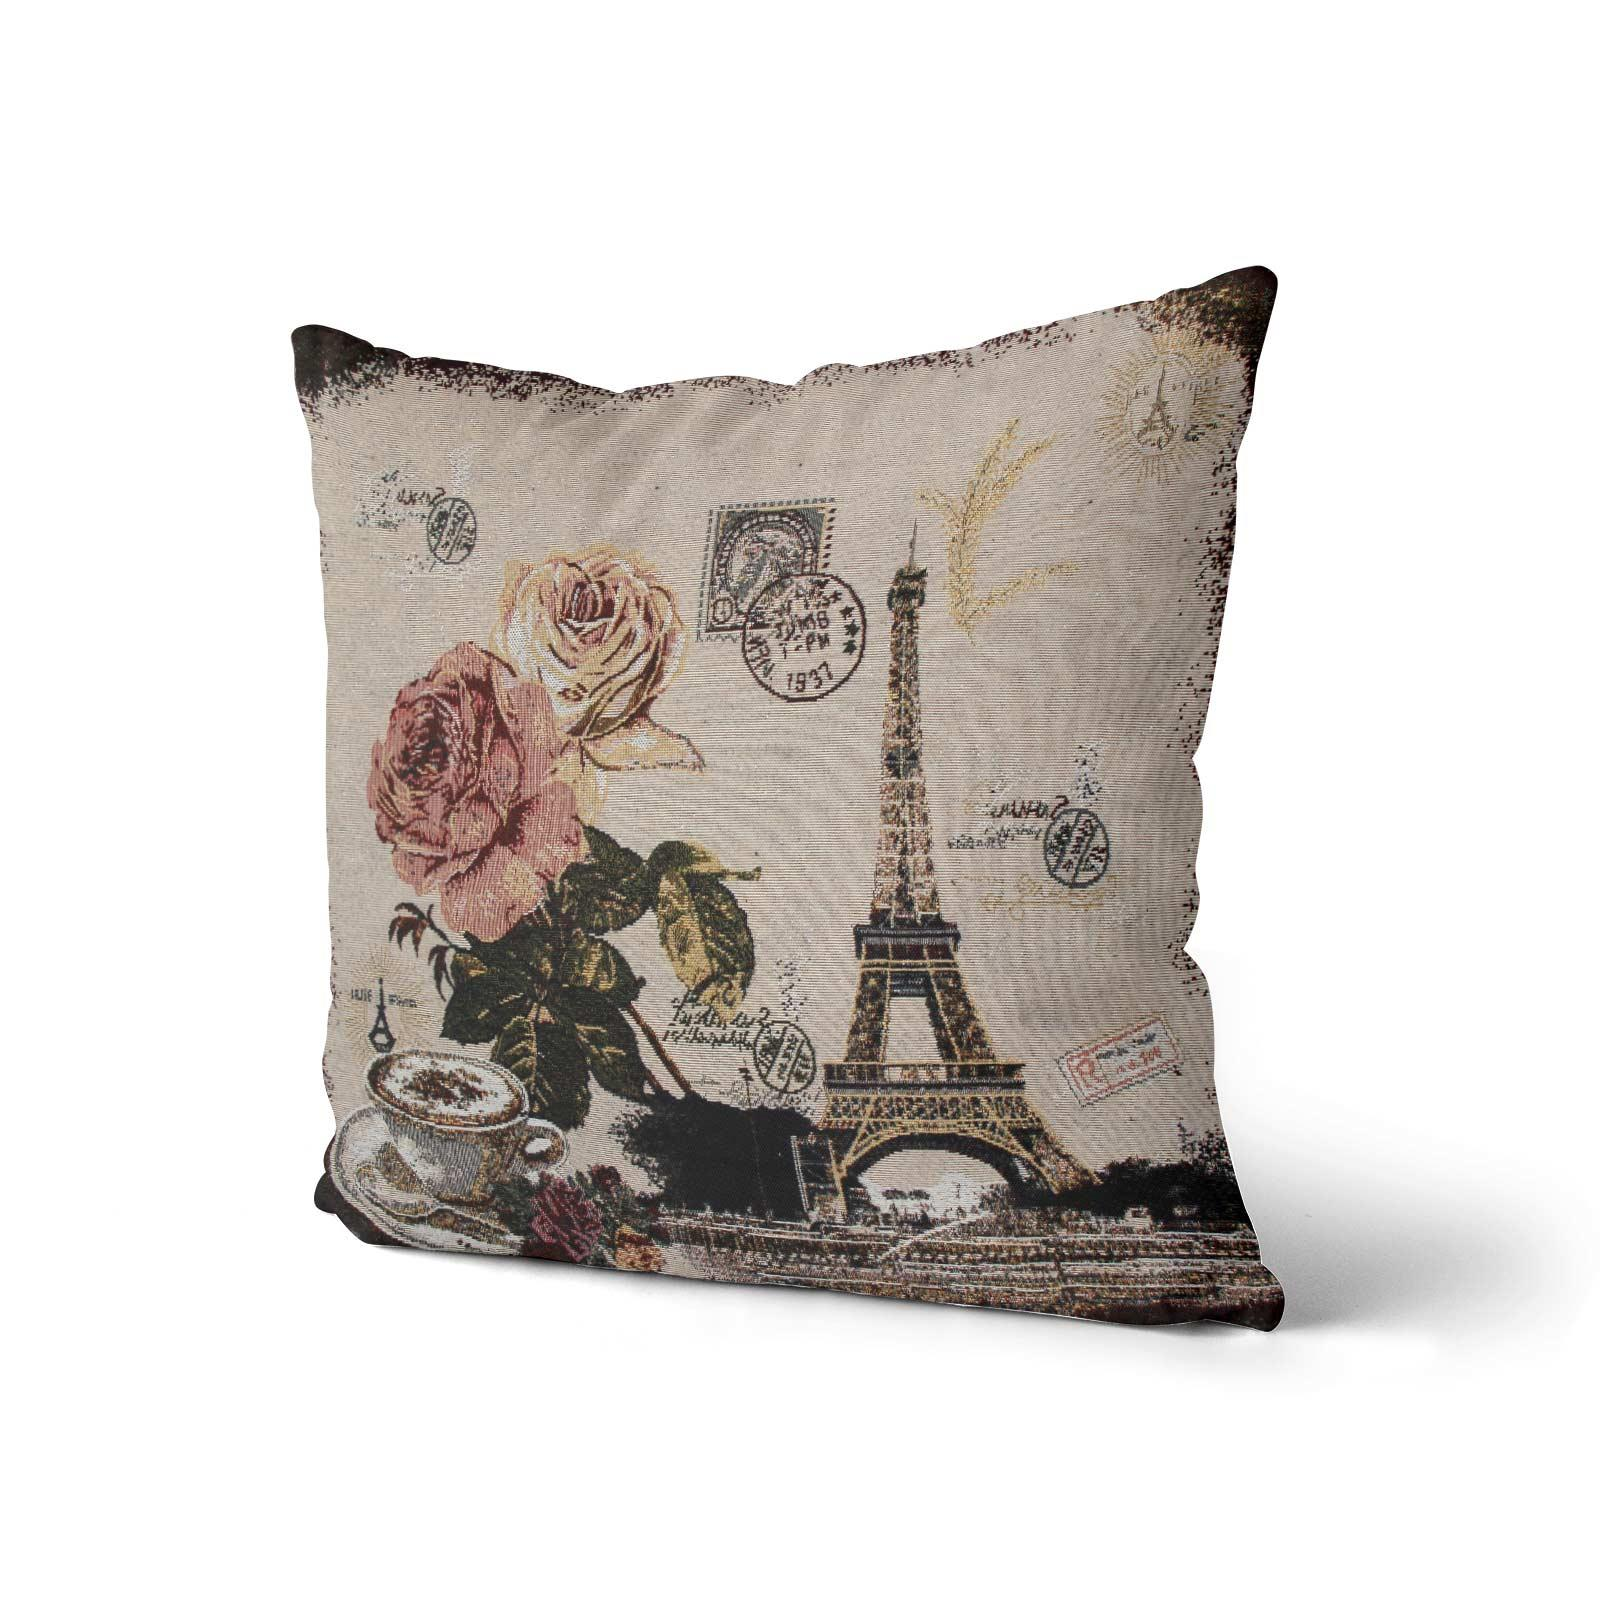 Tapestry-Cushion-Covers-Vintage-Pillow-Cover-Collection-18-034-45cm-Filled-Cushions thumbnail 155